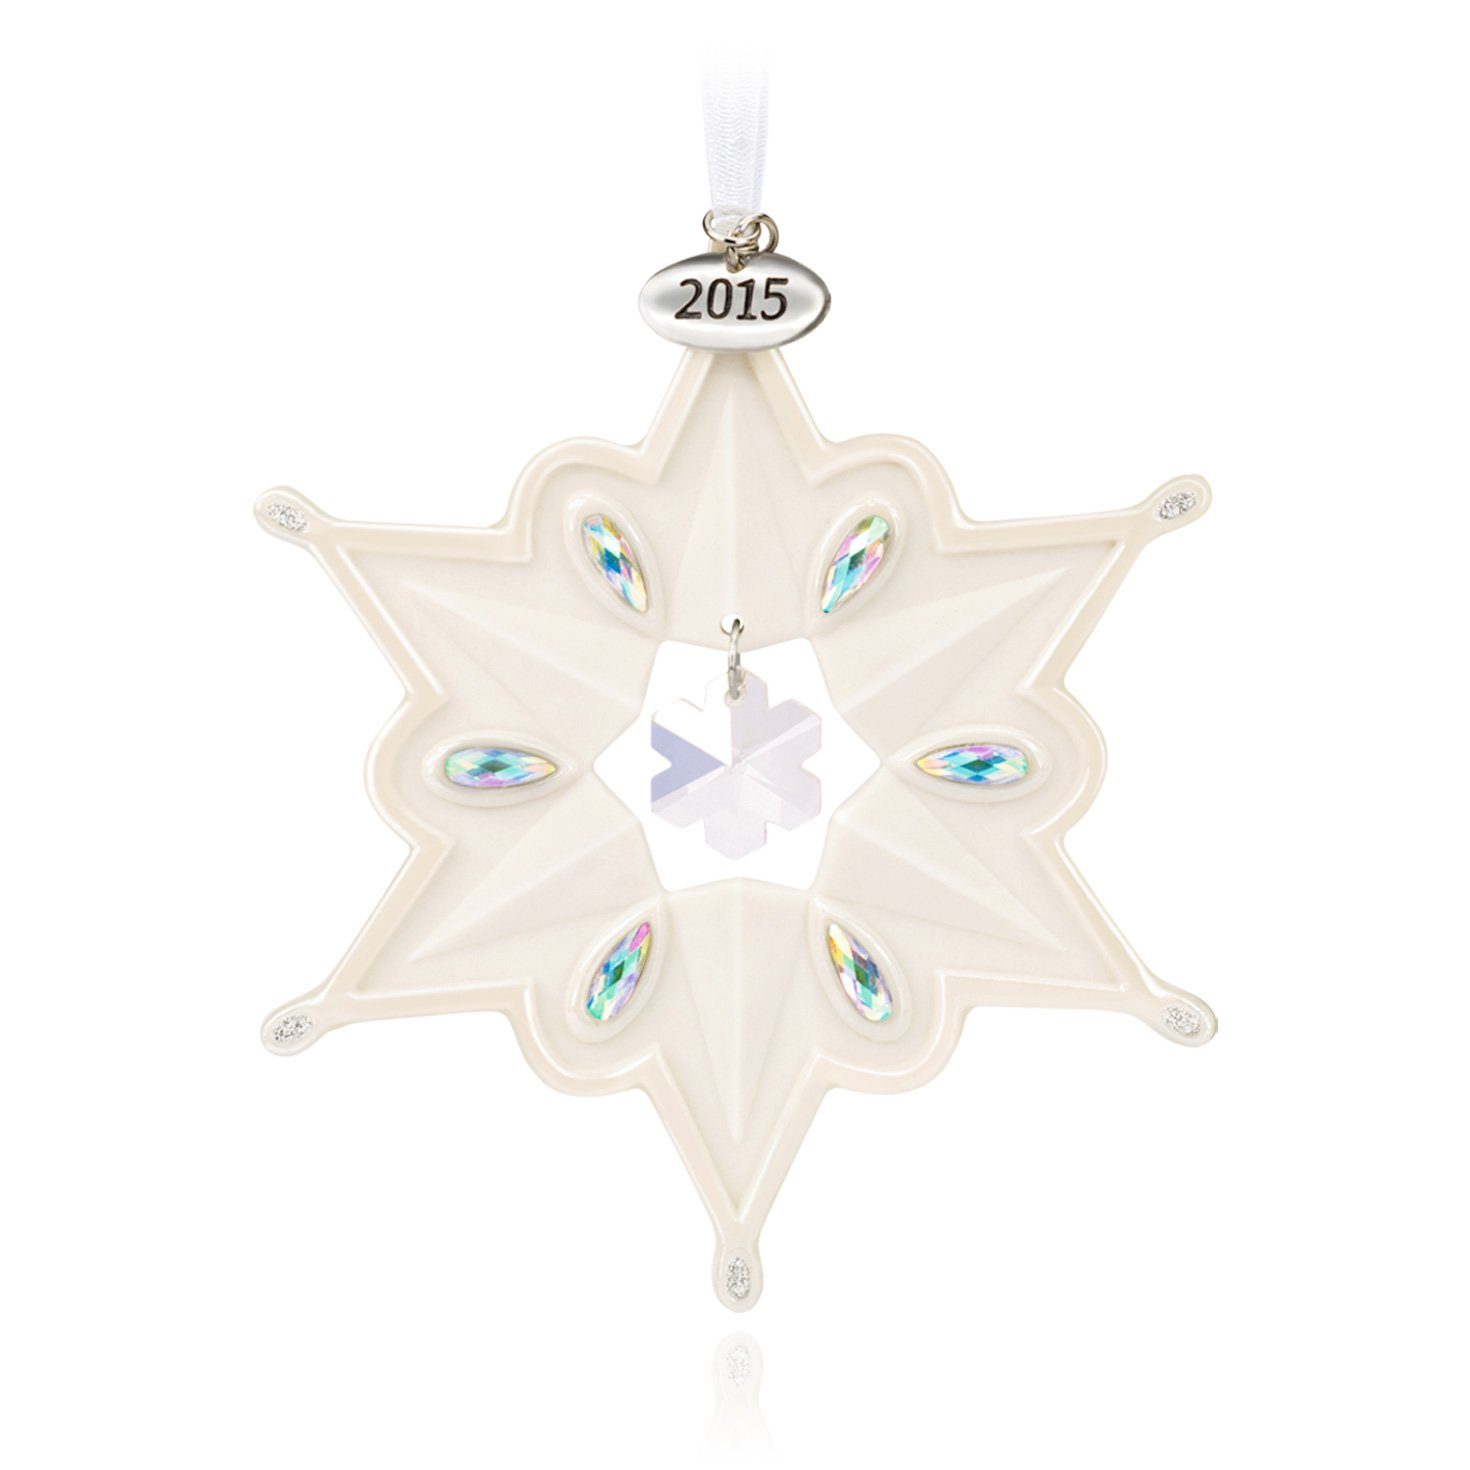 Hallmark Keepsake Ornament: Porcelain Snowflake with Rhinestones